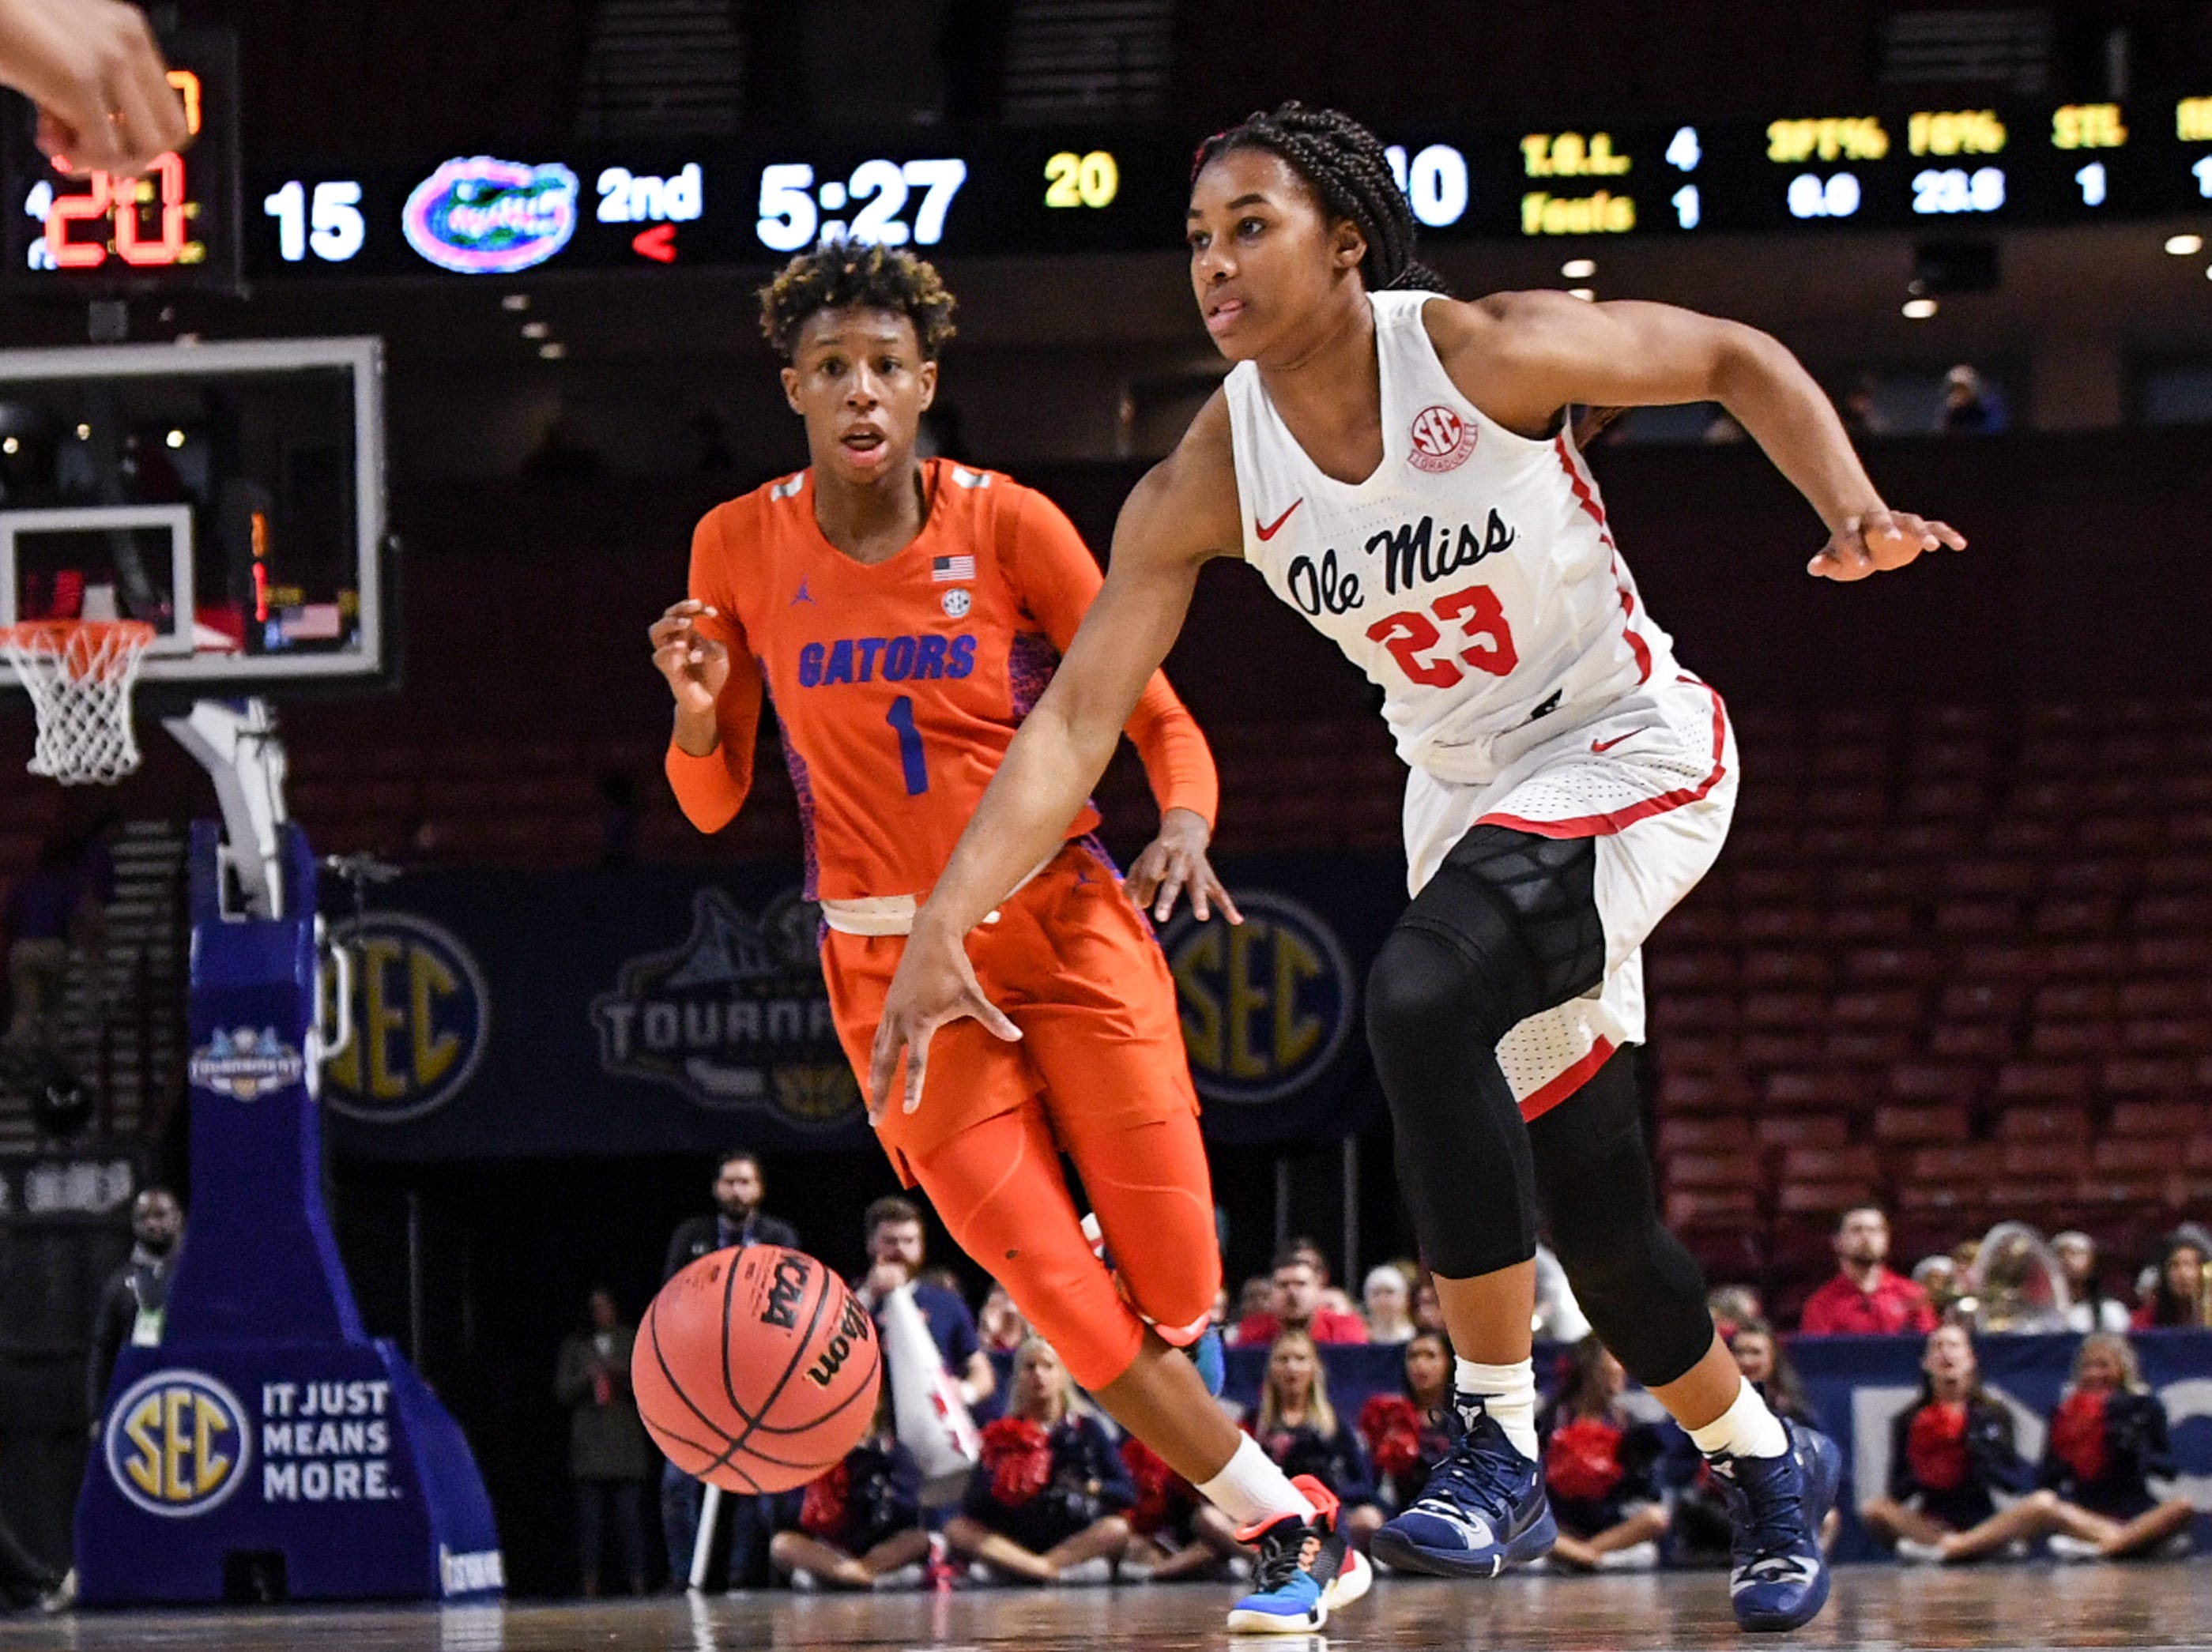 Ole Miss senior Shandricka Sessom(23) dribbles near Florida guard Kiara Smith(1) during the fourth quarter of the Southeastern Conference Women's Tournament game at Bon Secour Wellness Arena in Greenville Wednesday, March 6, 2019.